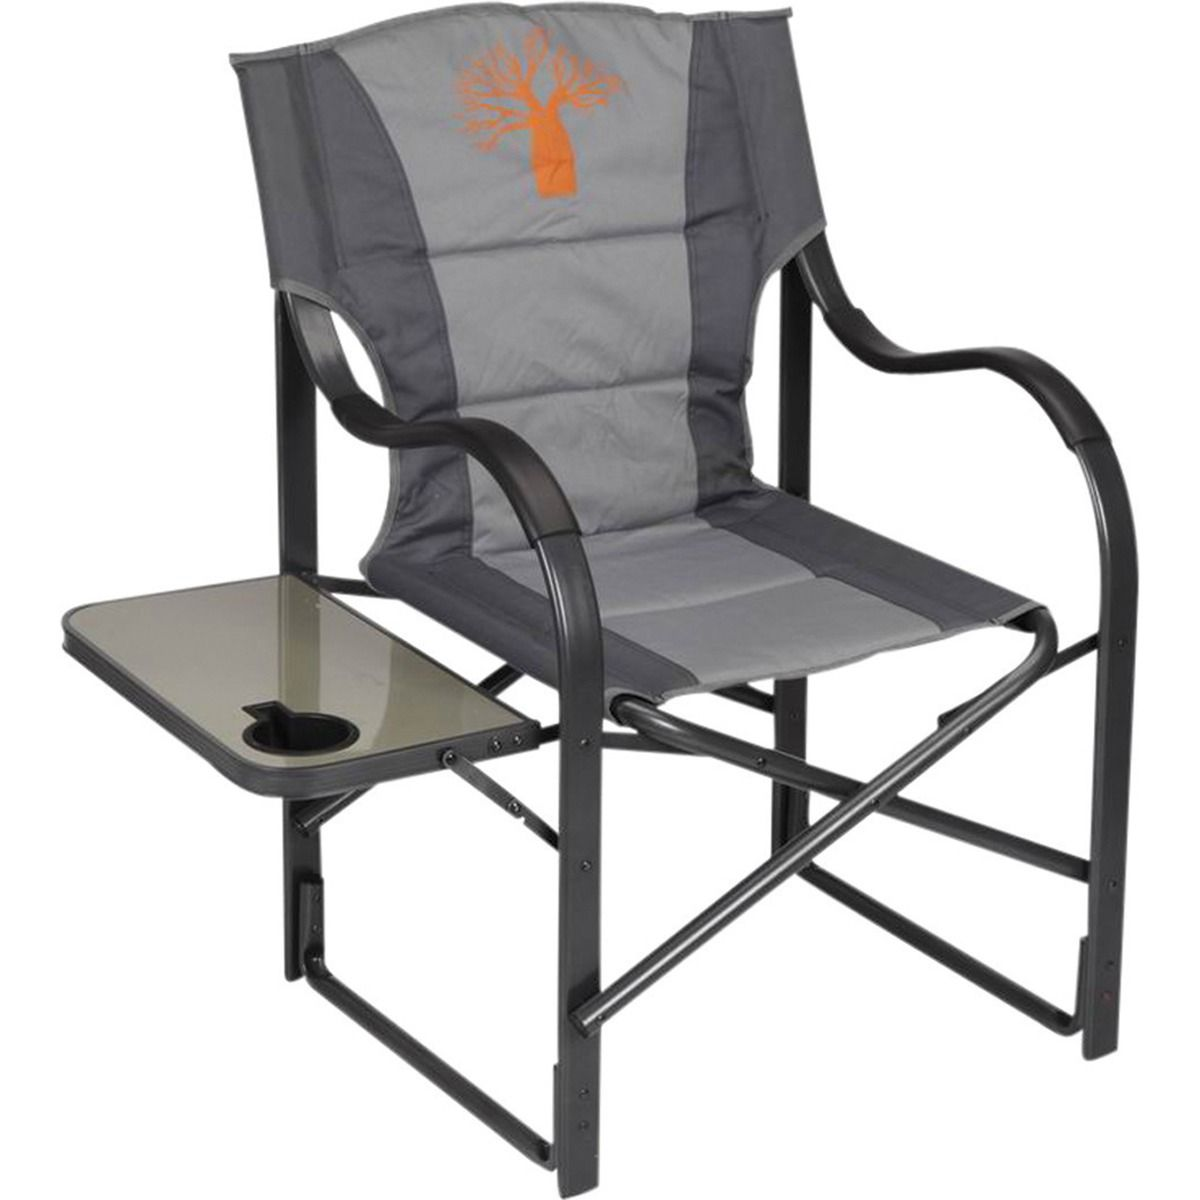 Boab Deluxe Directors Chair Grey Alloy Frame 120kg